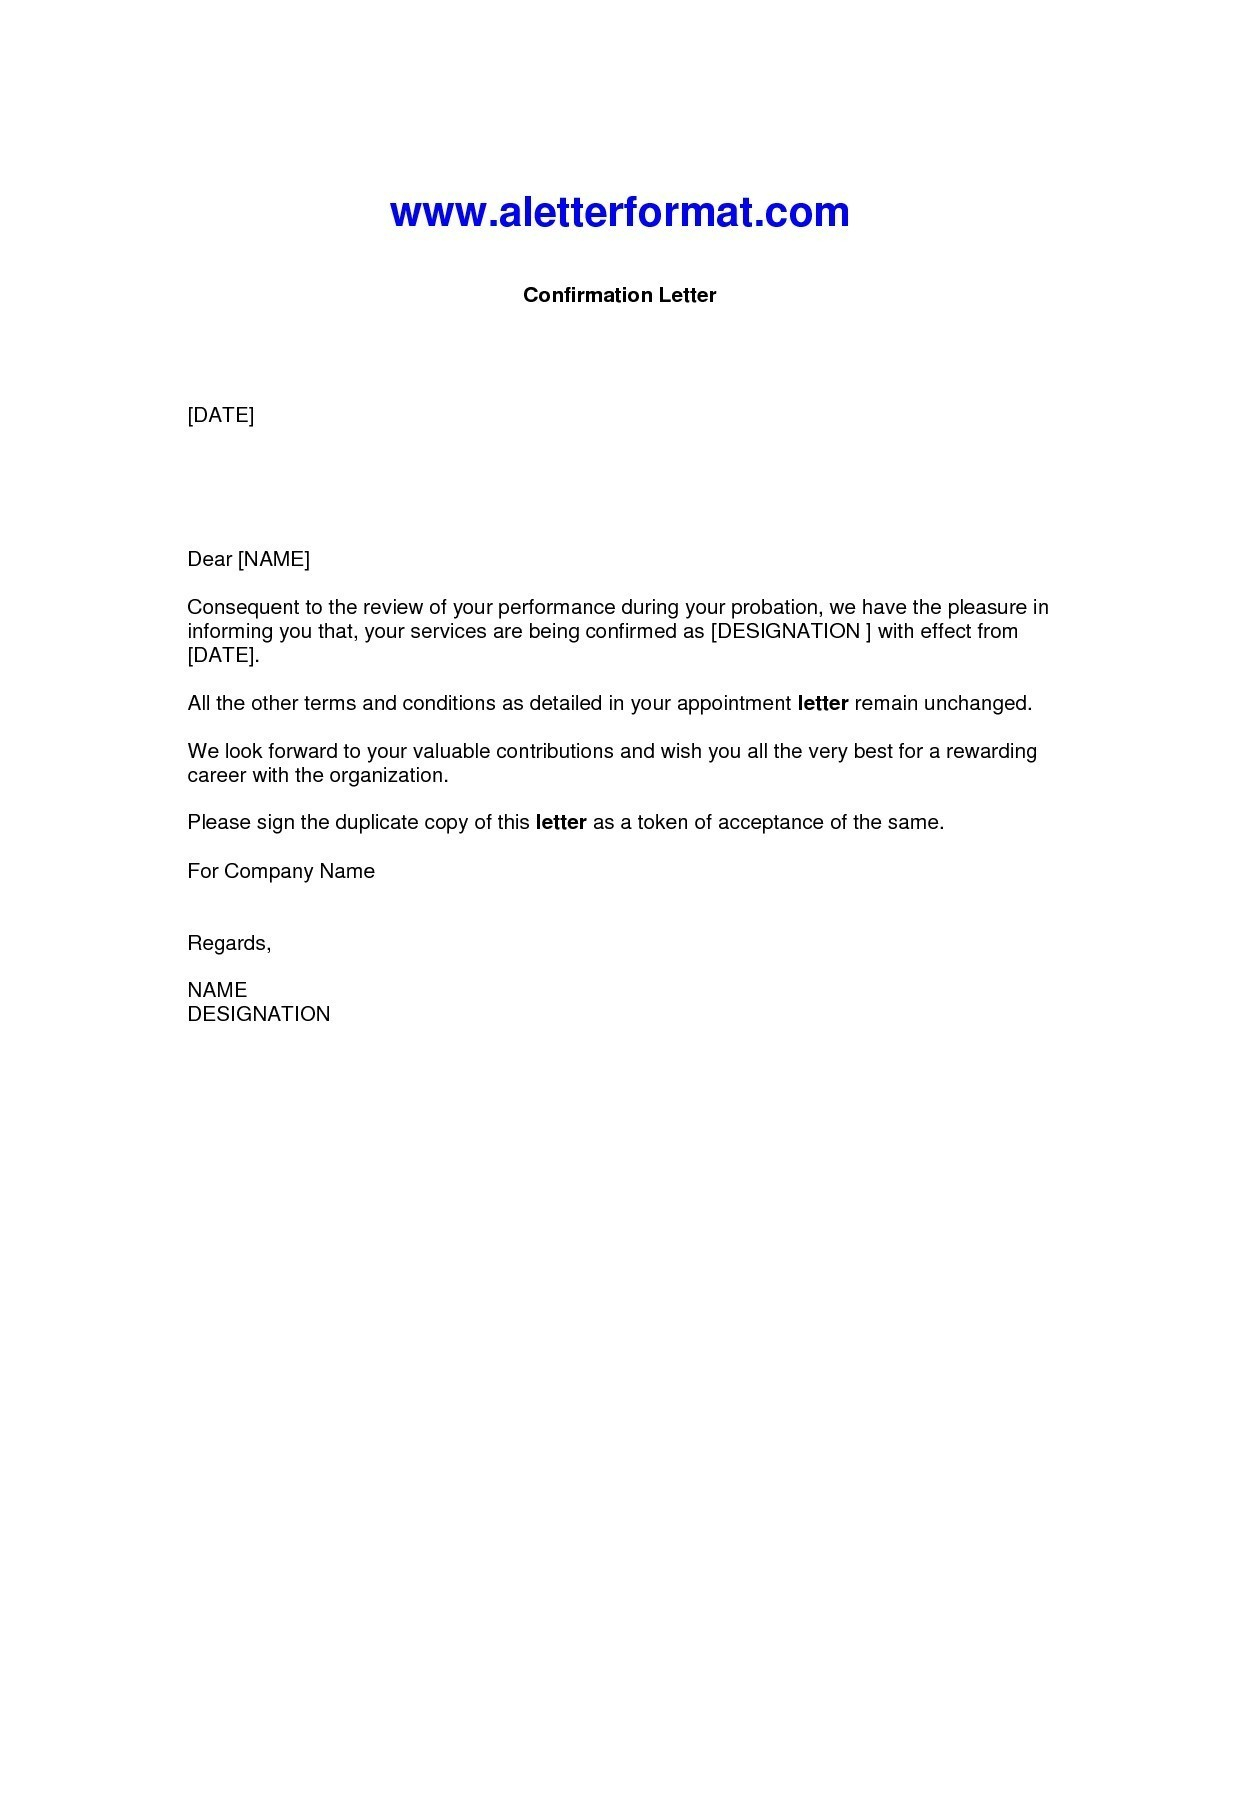 Confirmation Letter Template - Job Confirmation Letter New Confirmation Letter format Word Document